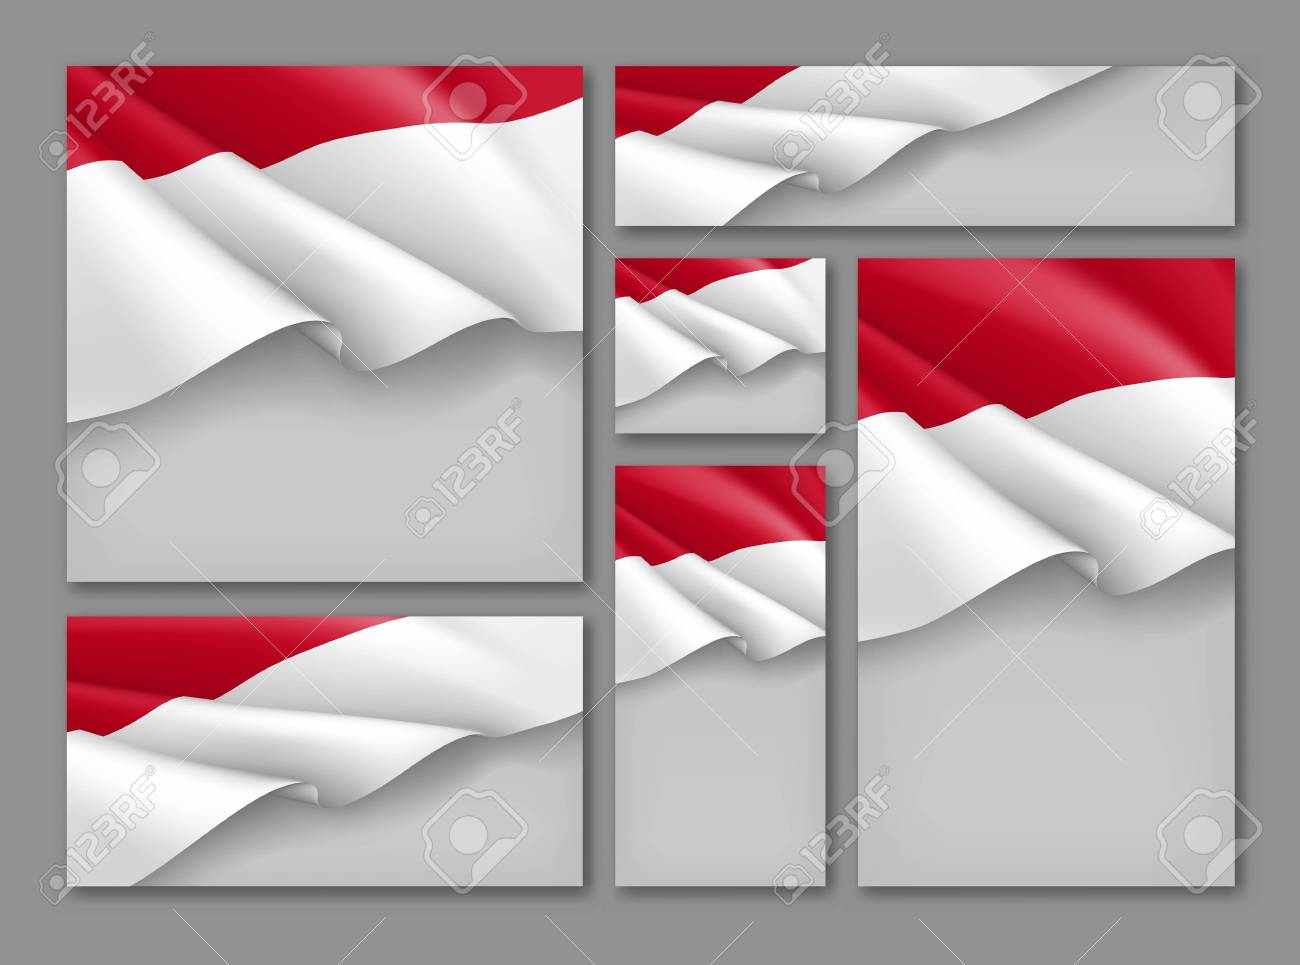 Indonesian patriotic festive banners set. Realistic waving indonesian flag on grey background. Independence, democracy and freedom vector layouts. Indonesia republic day concept with space for text - 112062336